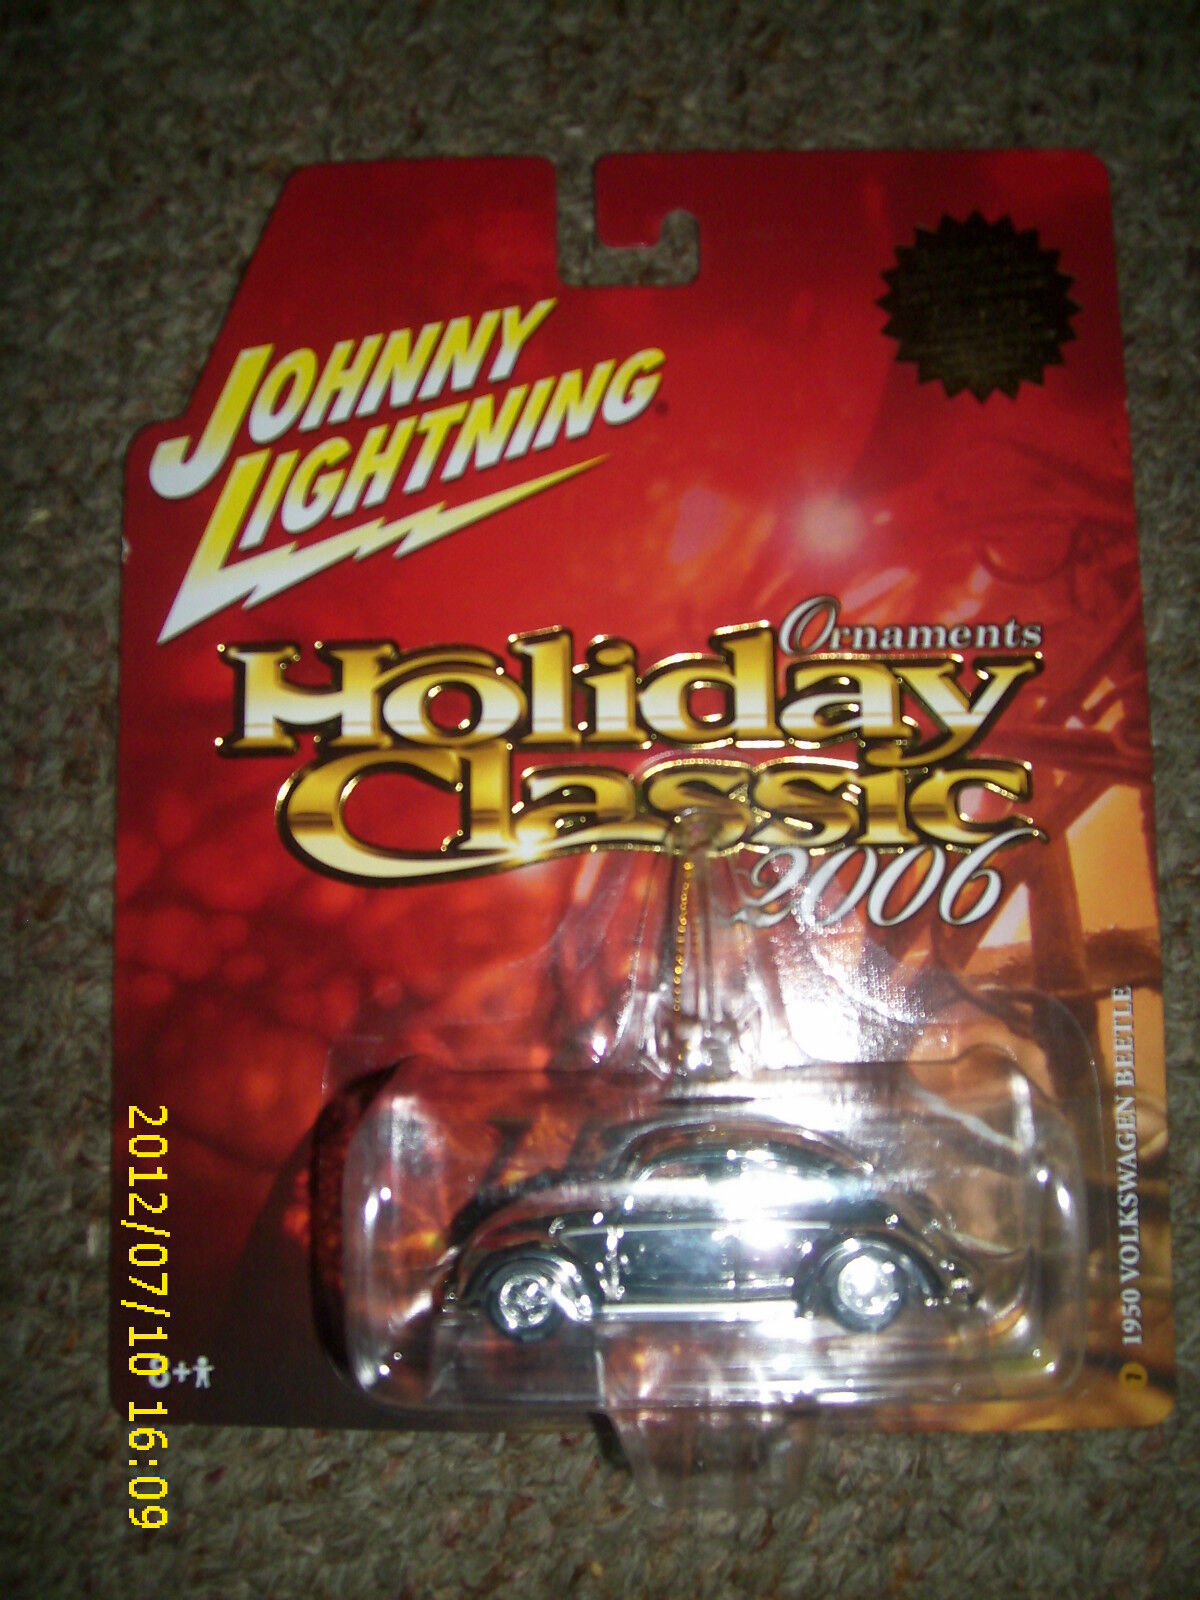 JOHNNY bianca  LIGHTNING HOLIDAY CLASSIC 2006 ORNAUomoTS 1950 VOLKSWAGEN BEETLE  7